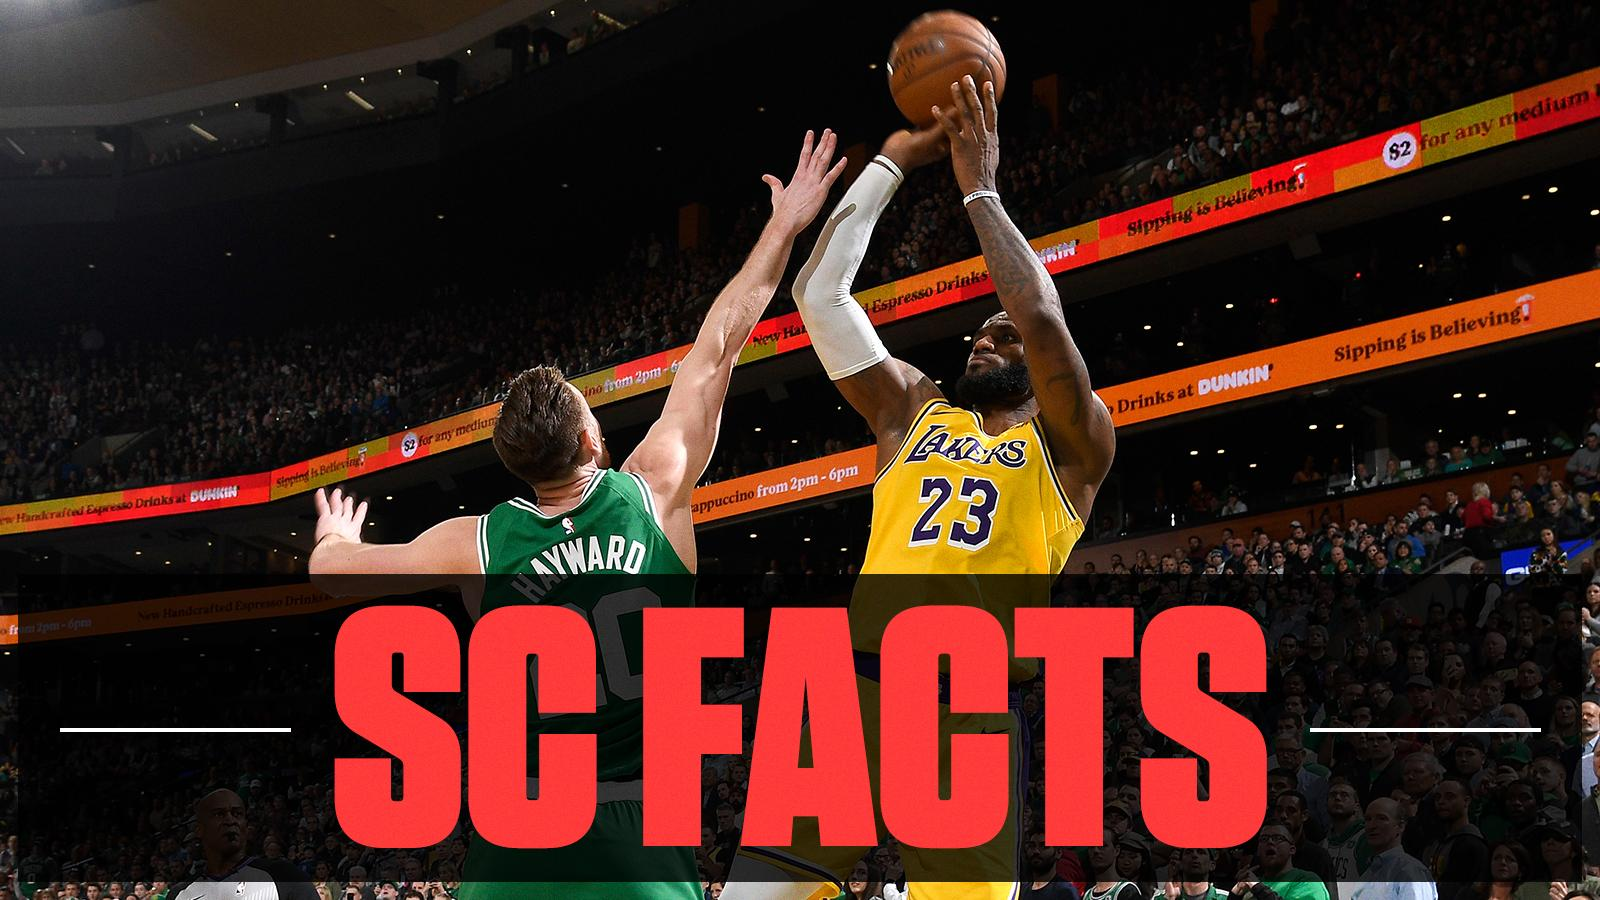 The Lakers hit a franchise record 20 3-pointers in their 129-128 win against the Celtics last night. #SCFacts https://t.co/dU5CQuhB1q